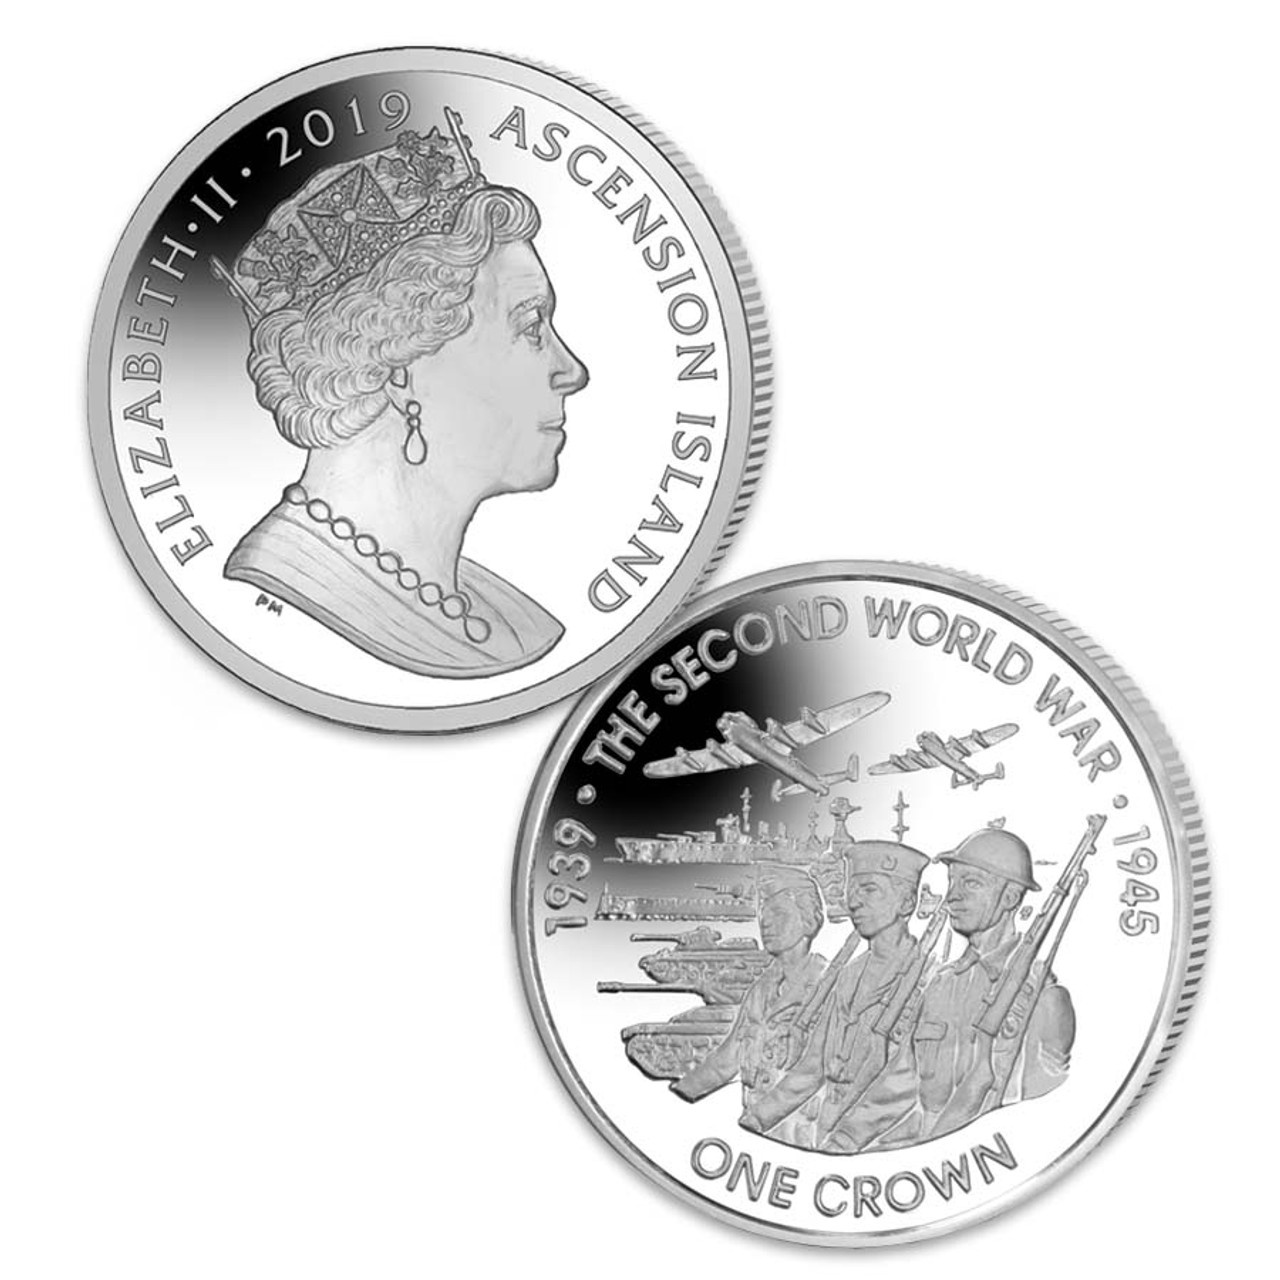 Ascension Island 2019 WWII 80th Anniversary Crown Brilliant Uncirculated Image 1